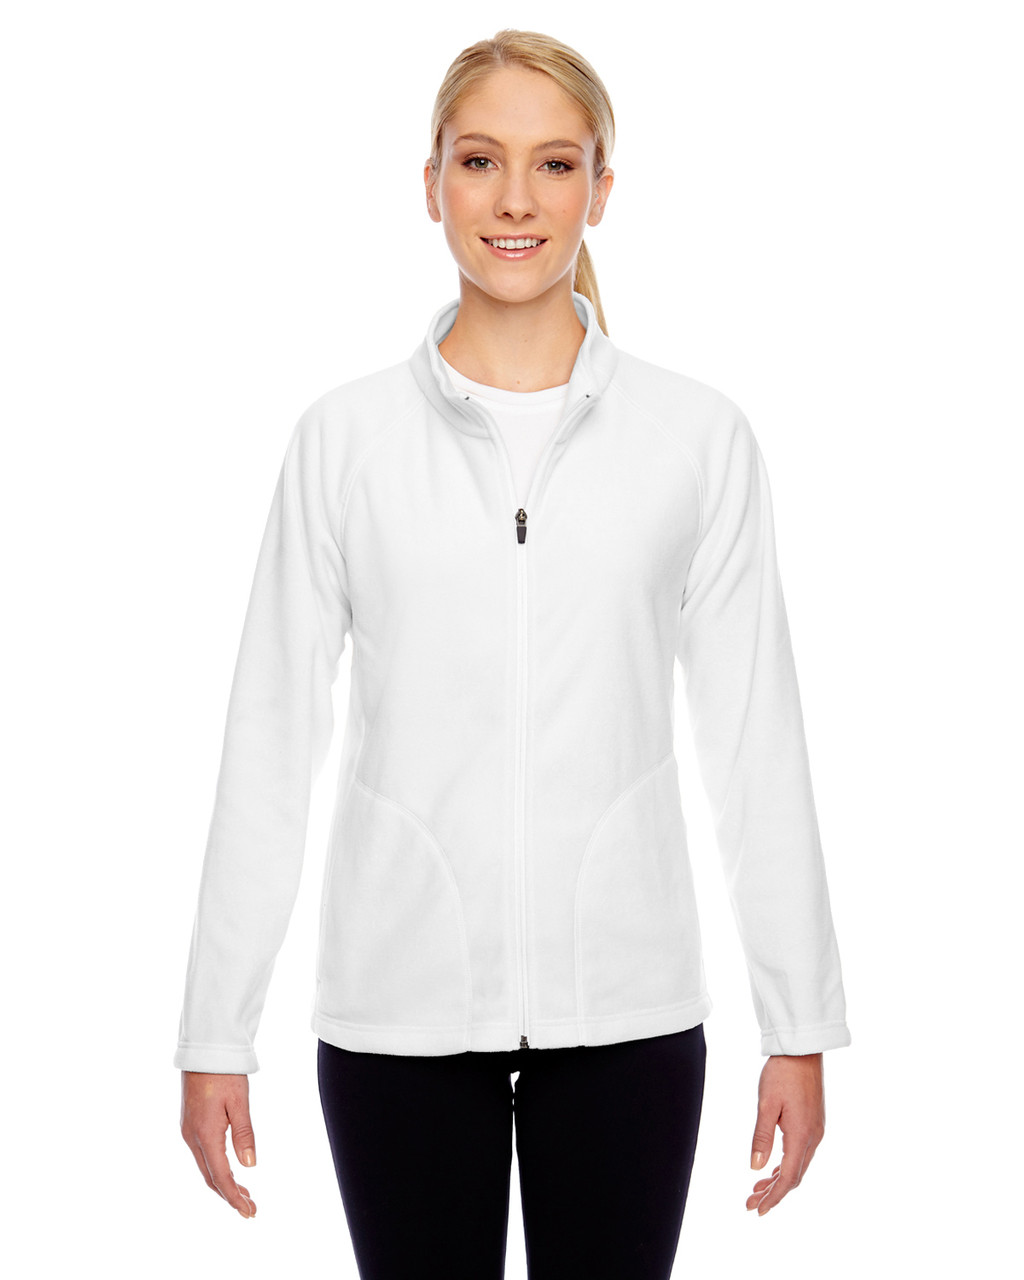 White - TT90W Team 365 Ladies' Campus Microfleece Jacket | BlankClothing.ca